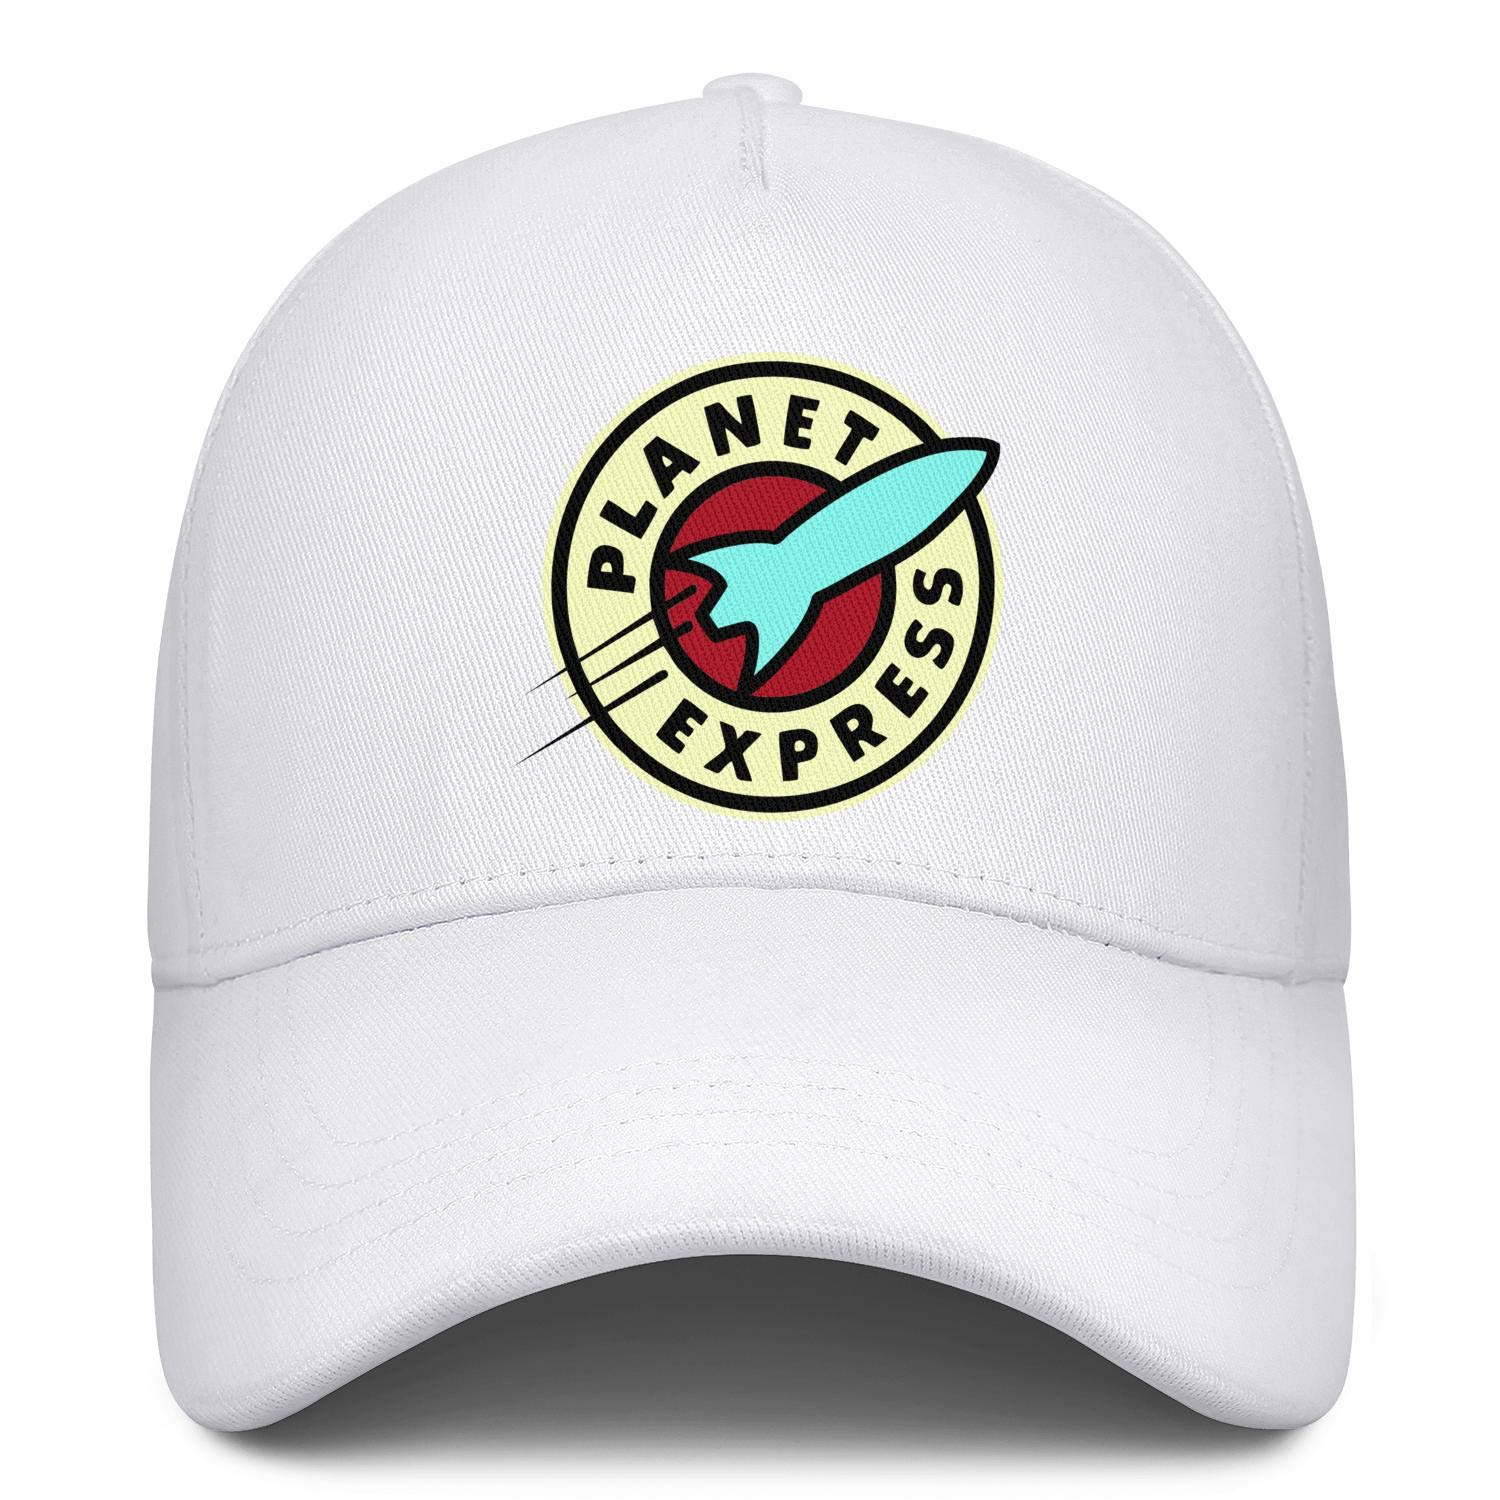 Mens Baseball Caps Crazy Womens Strapback WUSIMEI Plain Dad Hats for Men Planet-Express-Ship